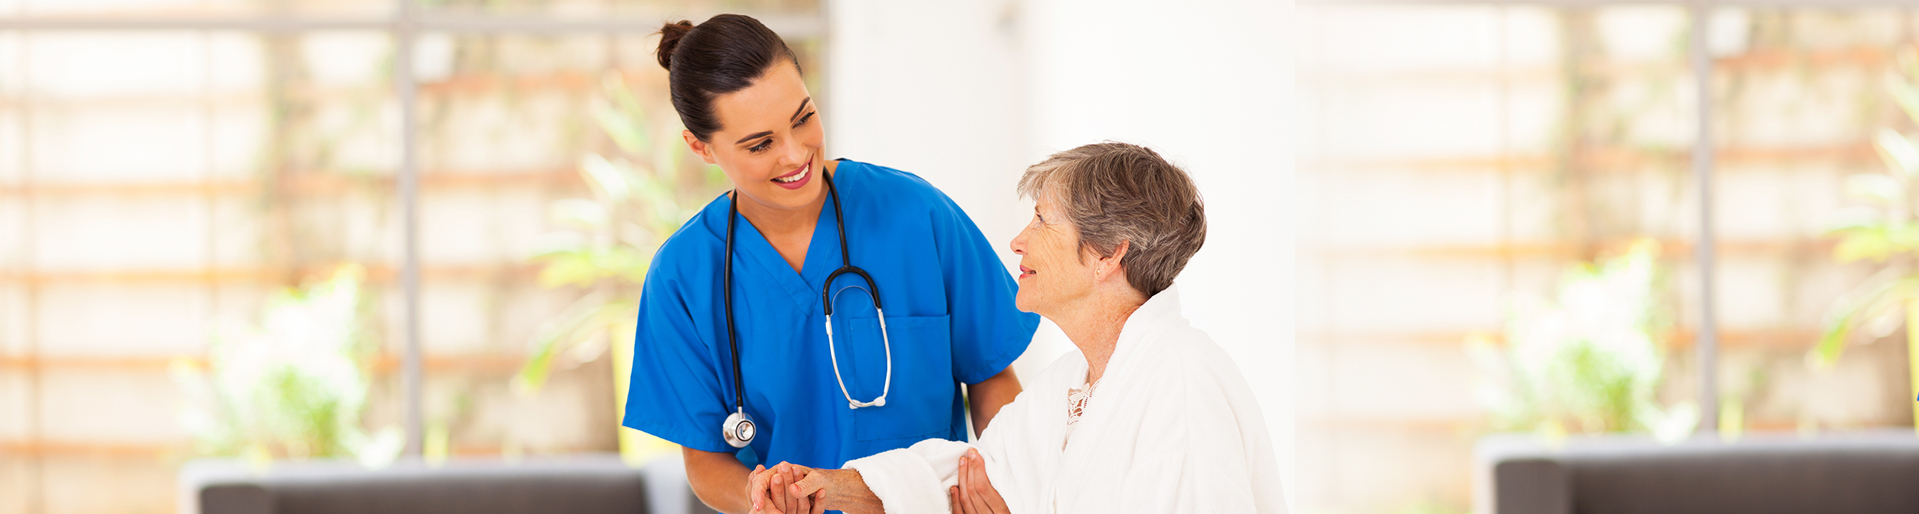 Ascendant Insurance Solutions provides a complete line of insurance products tailored for the healthcare industry.